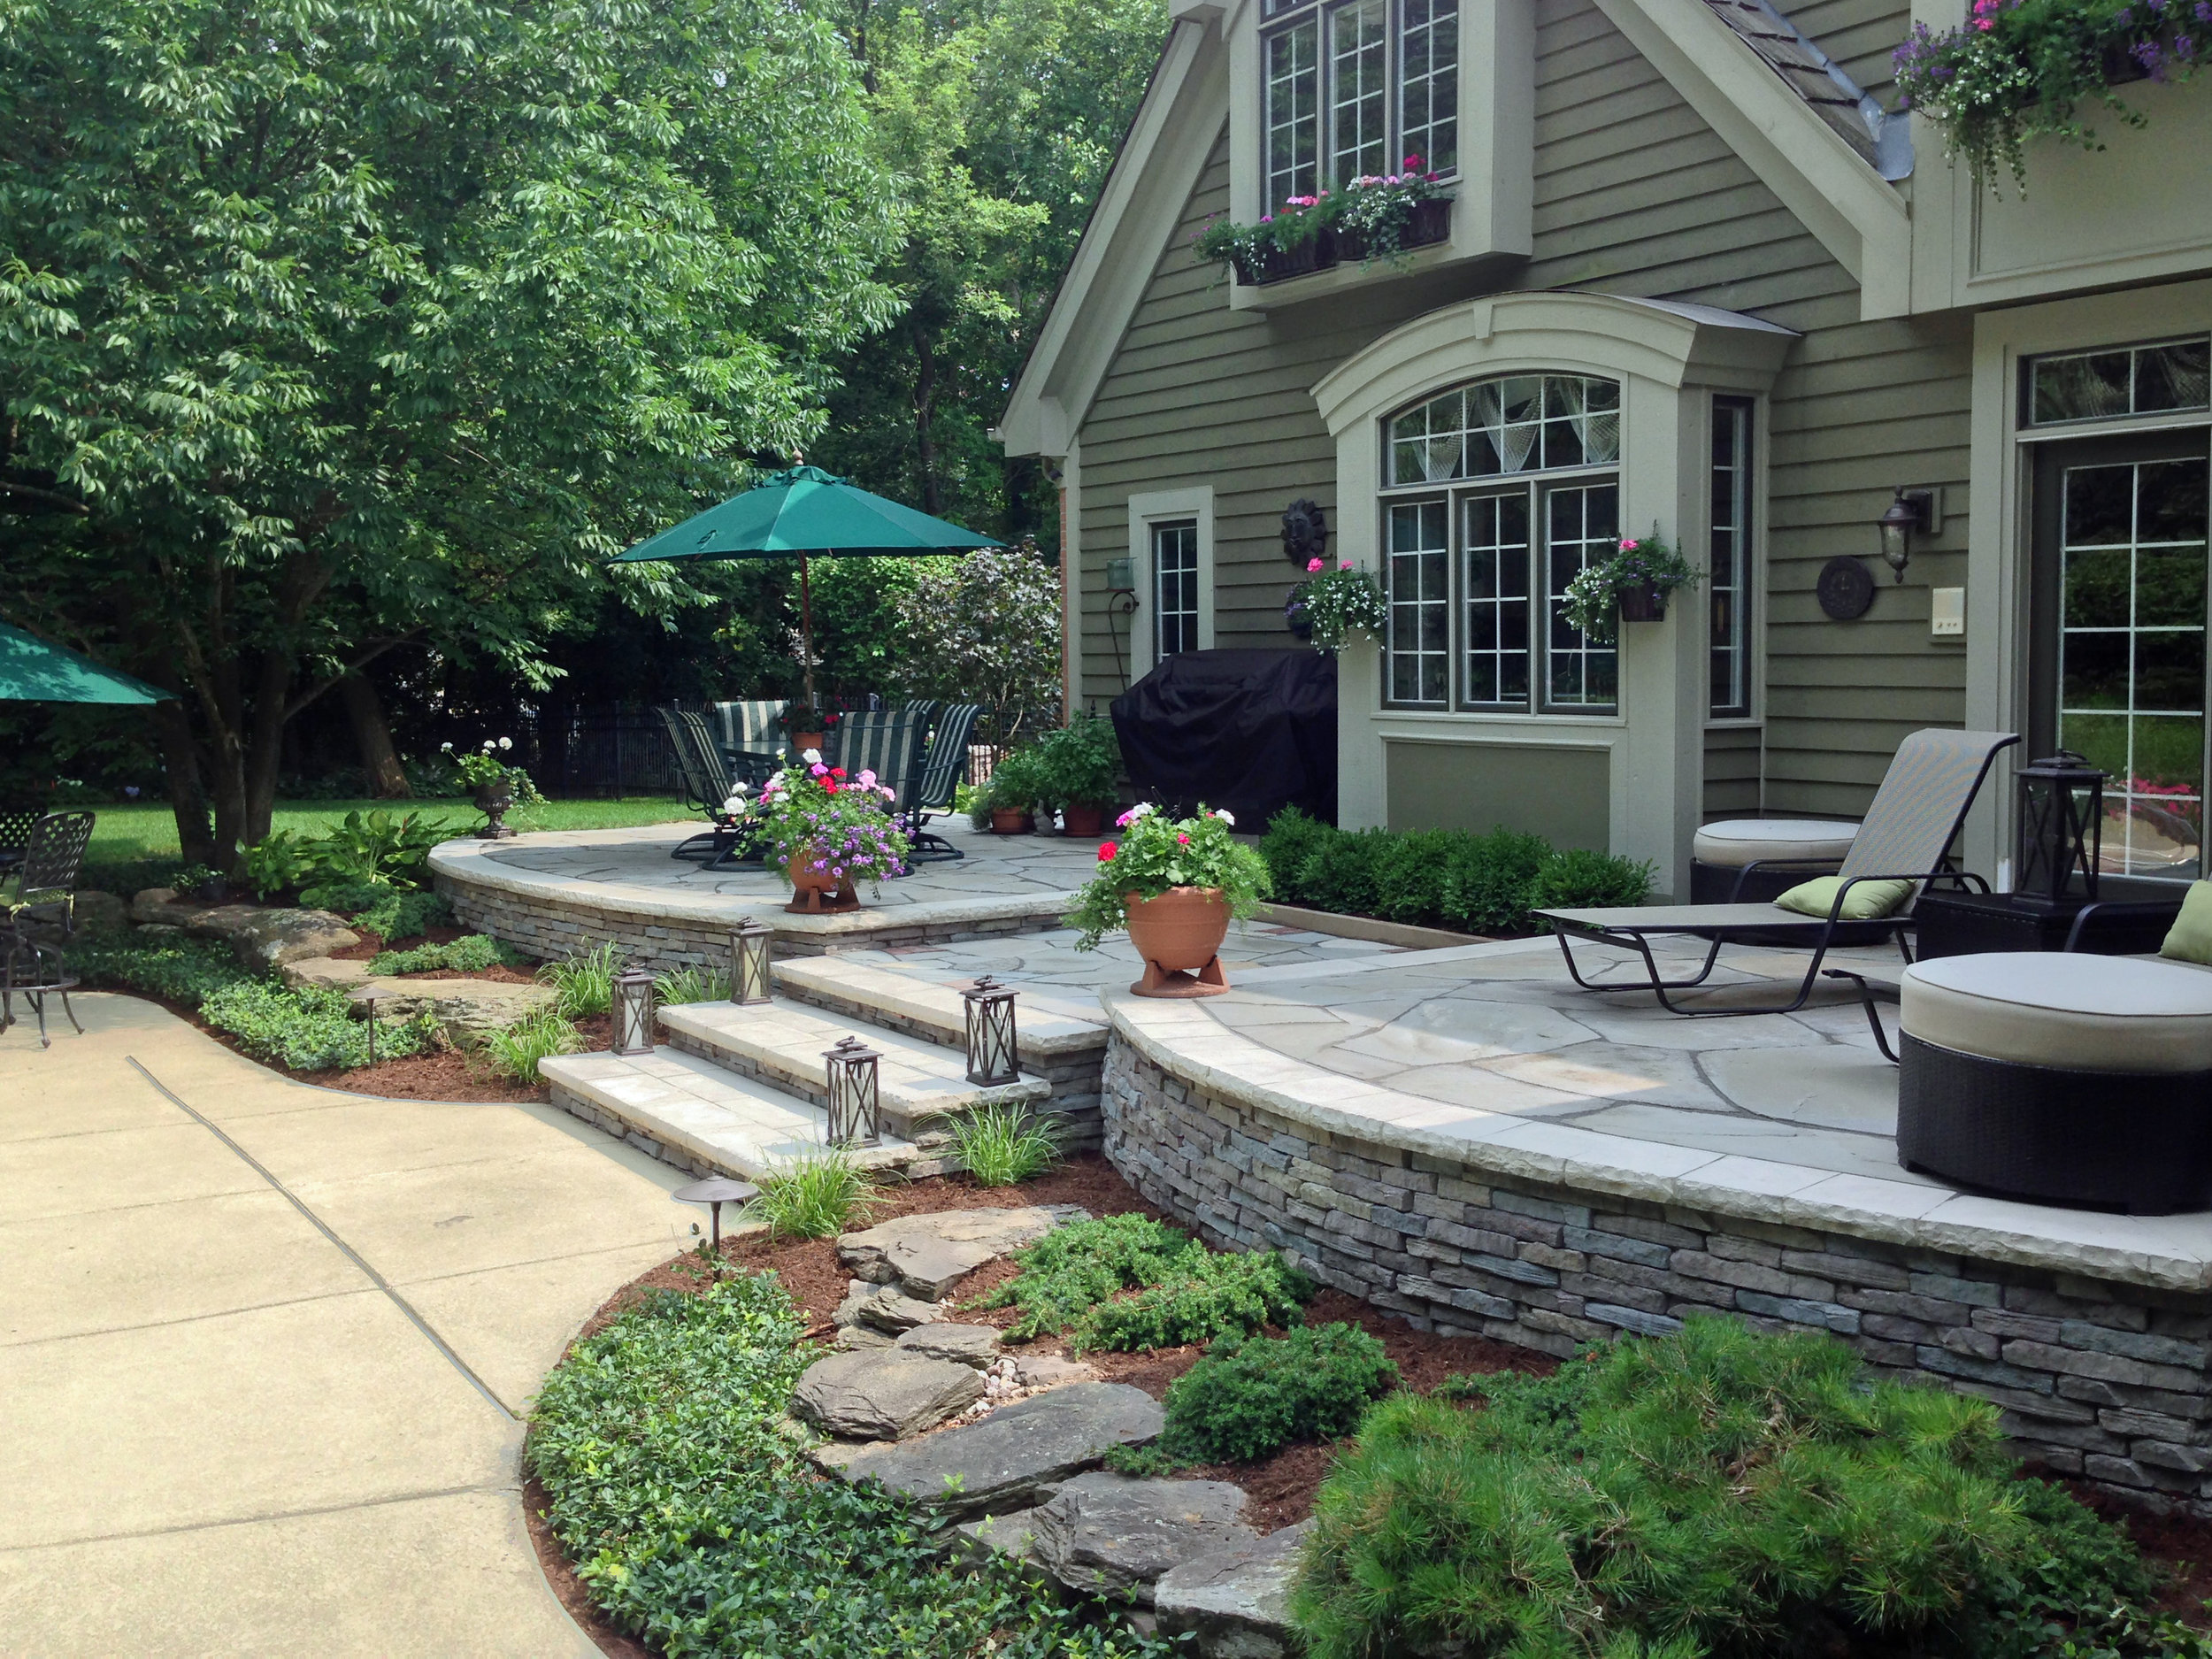 Outdoor living space landscape architecture after renovation in Wayne, IL